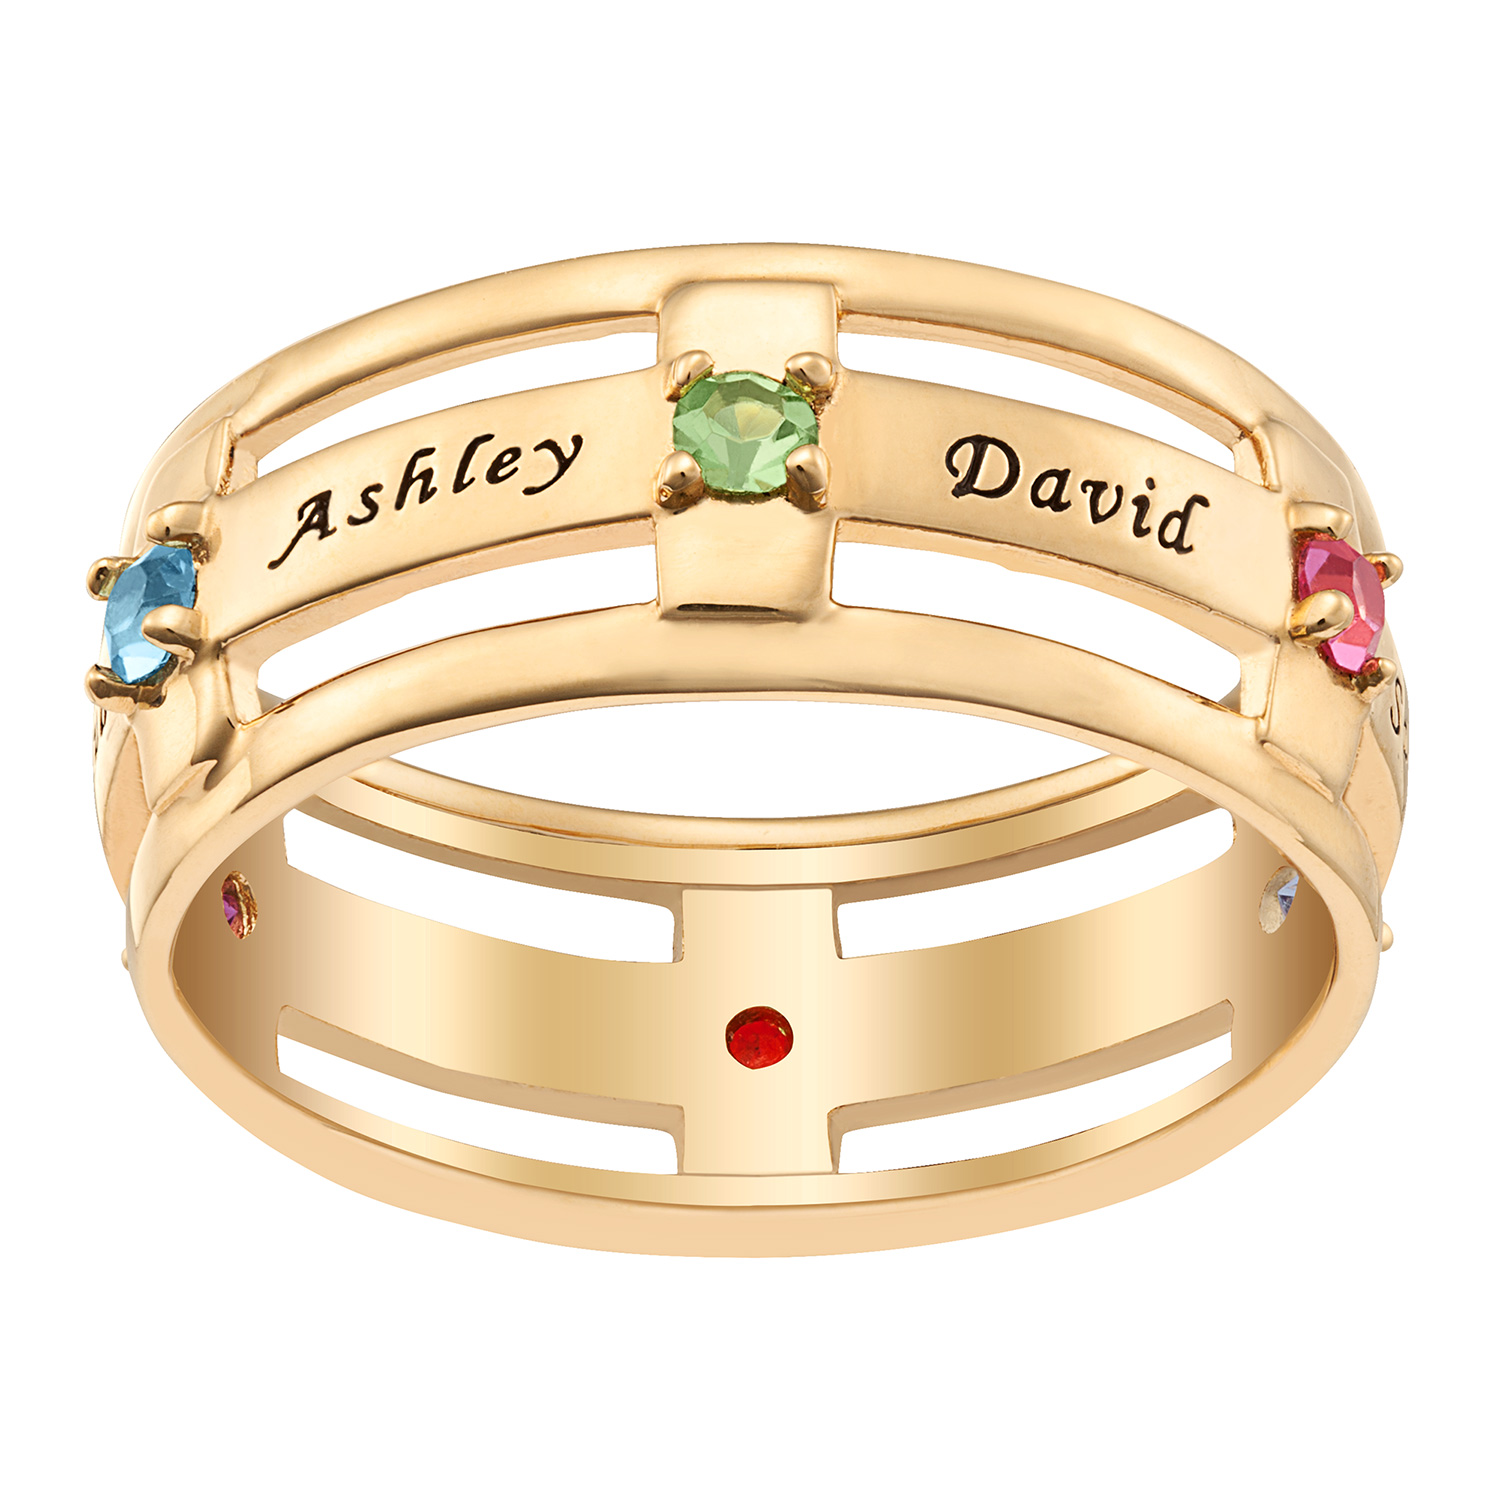 Personalized Women's Silvertone or Goldtone Family Name And Birthstone Ring